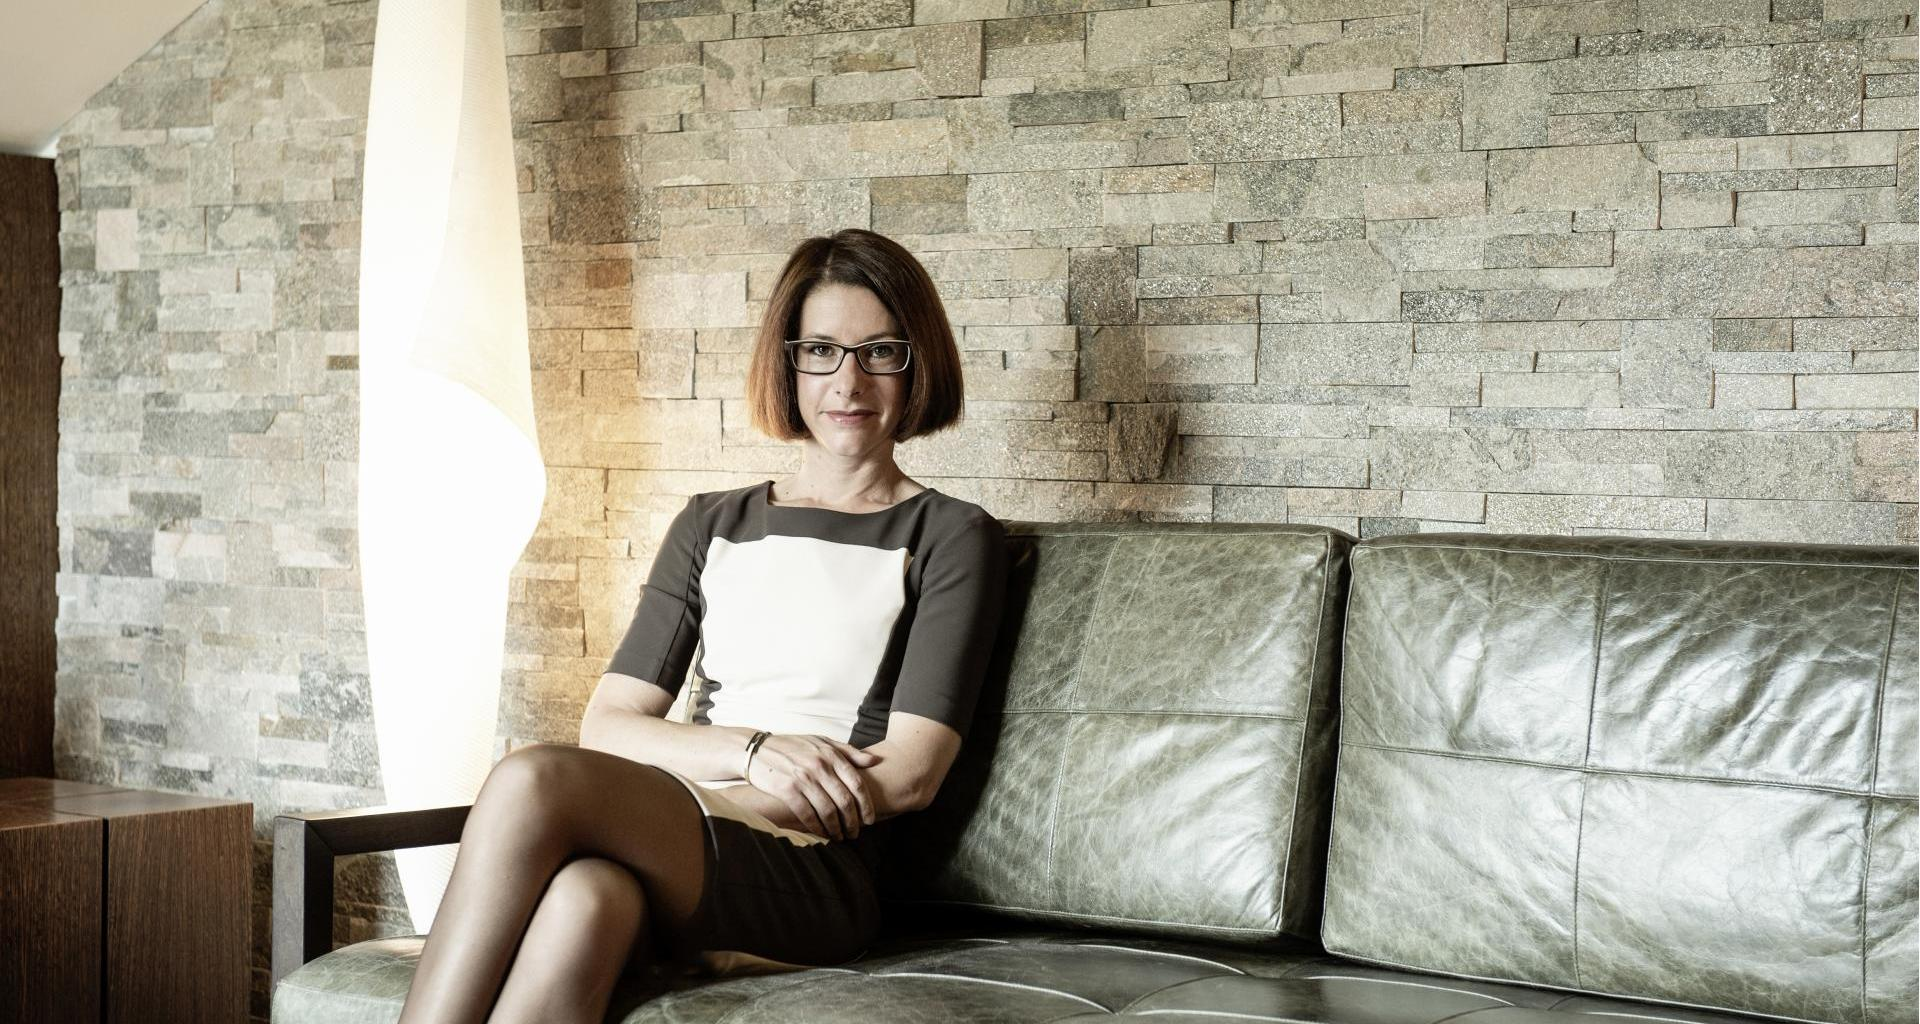 barbara-cigar-okay